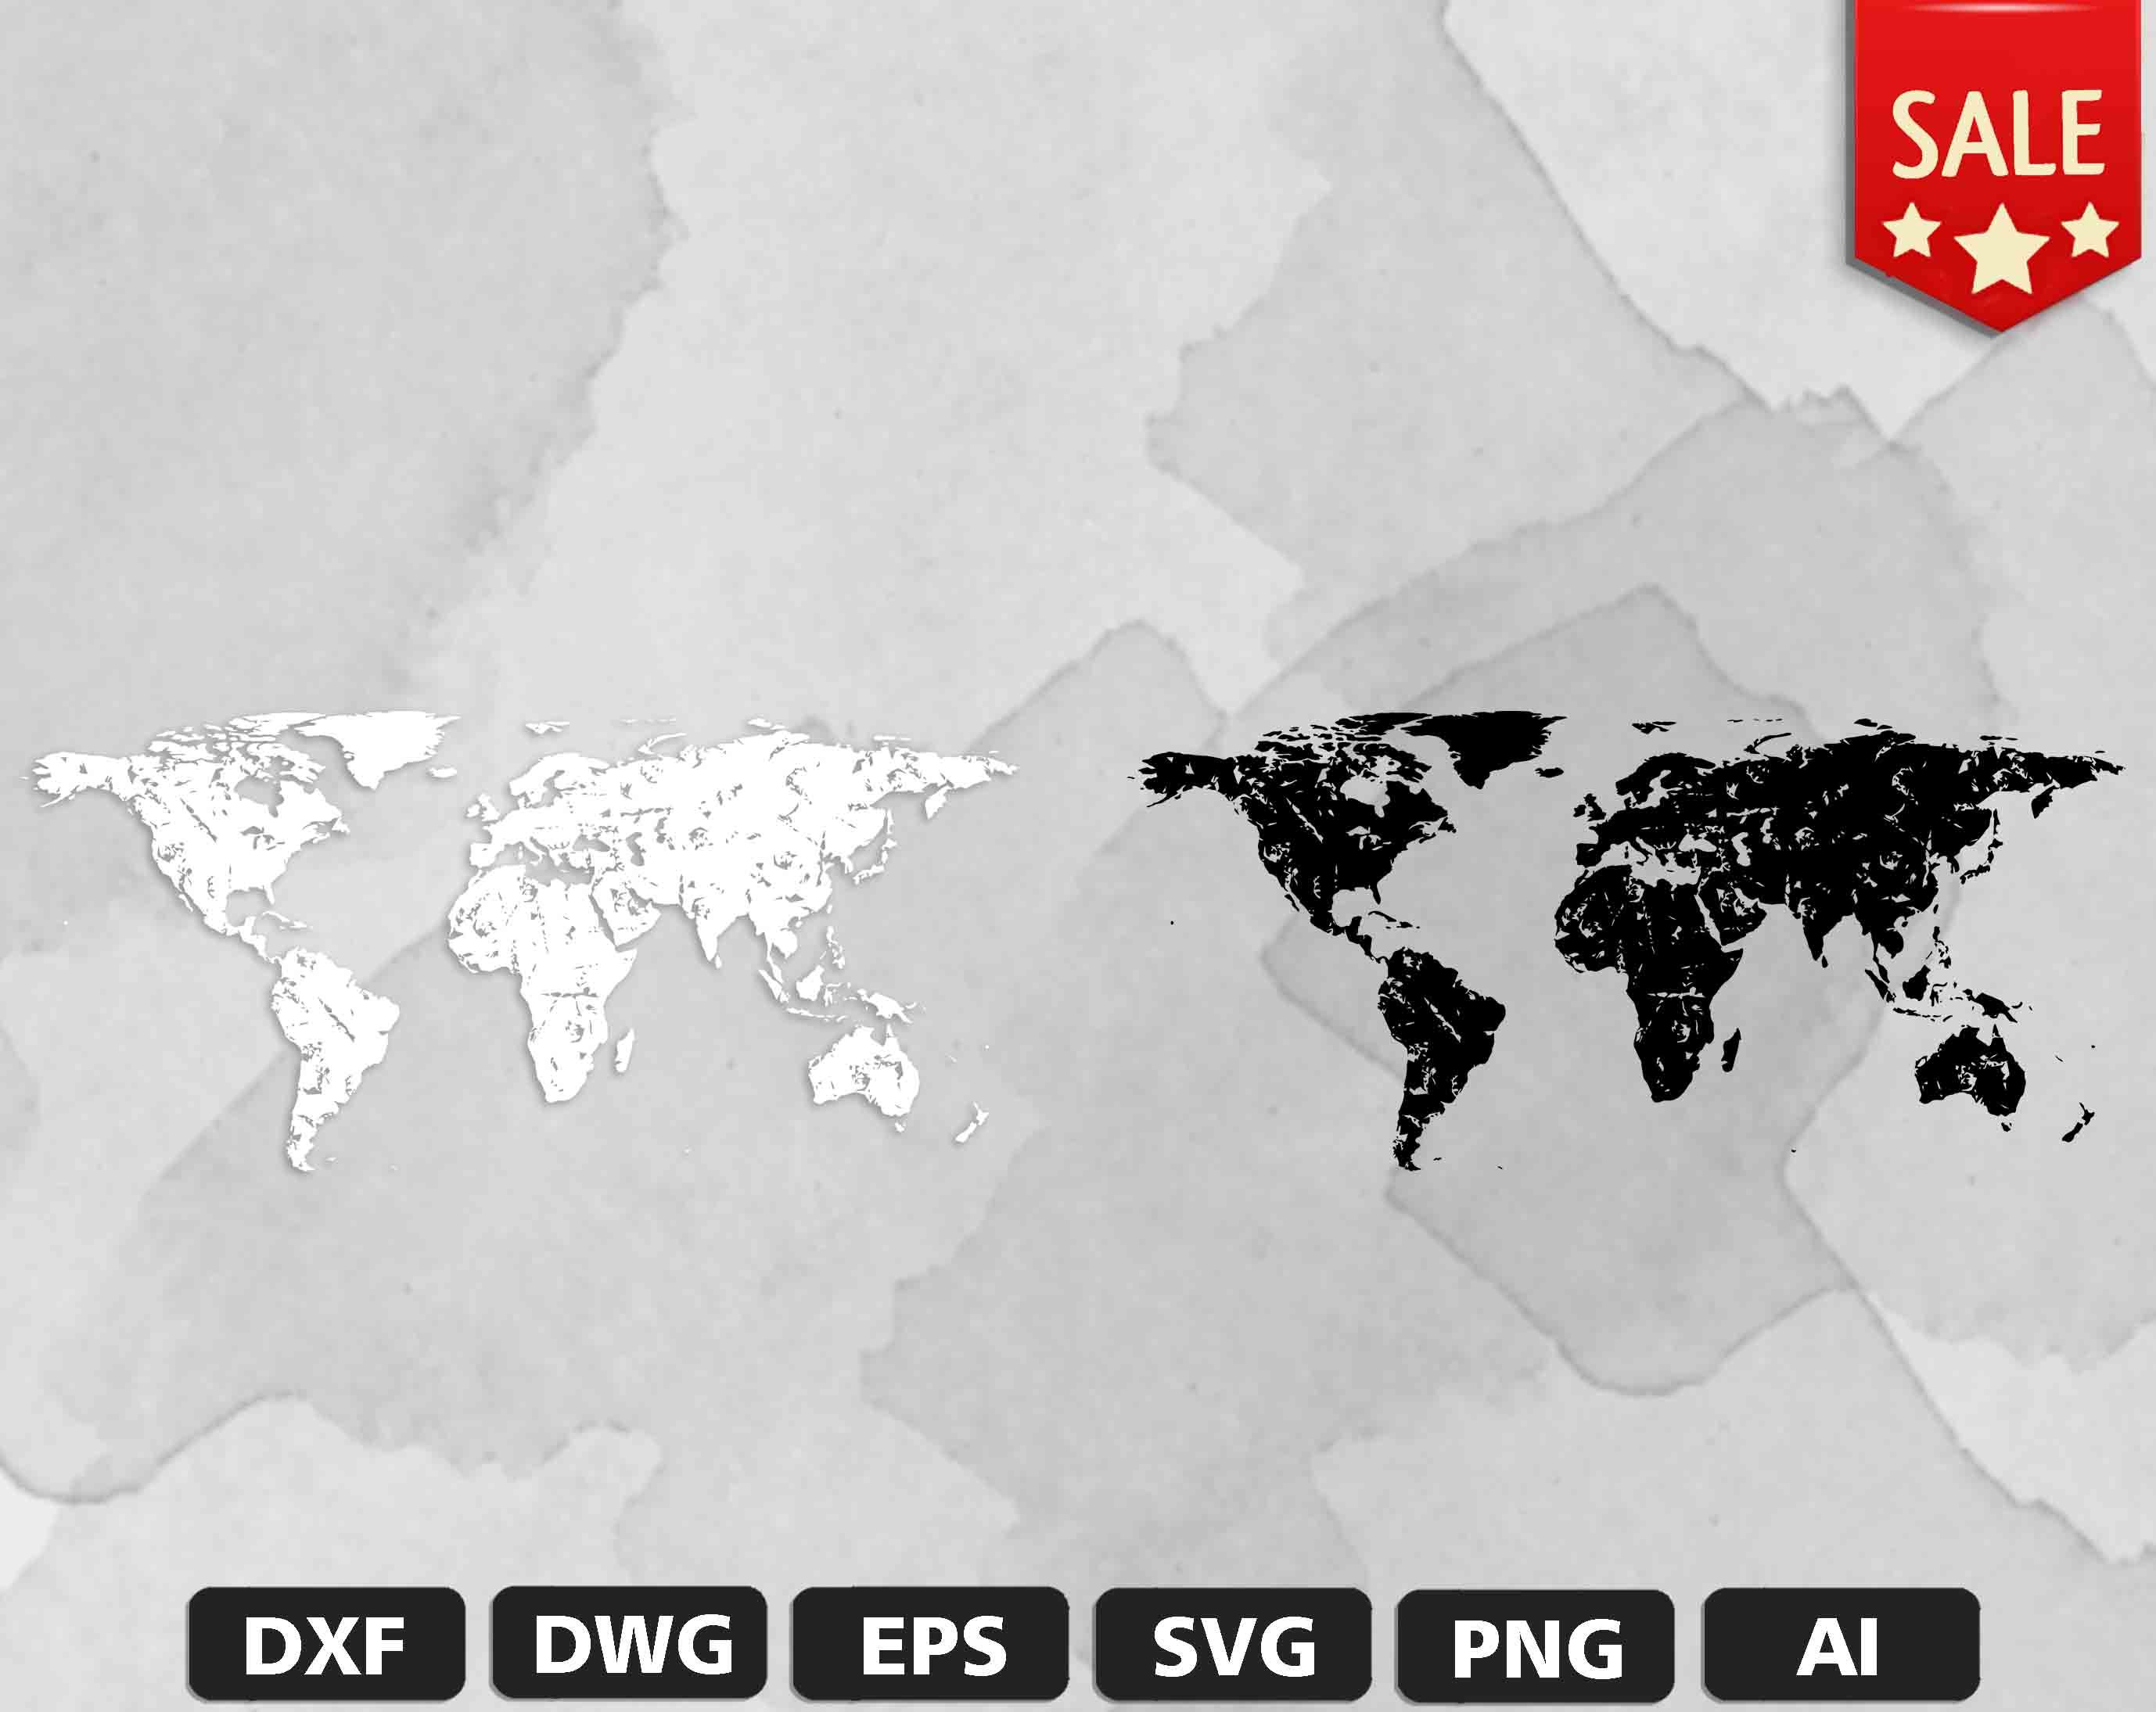 World map svg eps png ai dxf dwg format download world map world map svg eps png ai dxf dwg format download world map clipart cricut gumiabroncs Choice Image